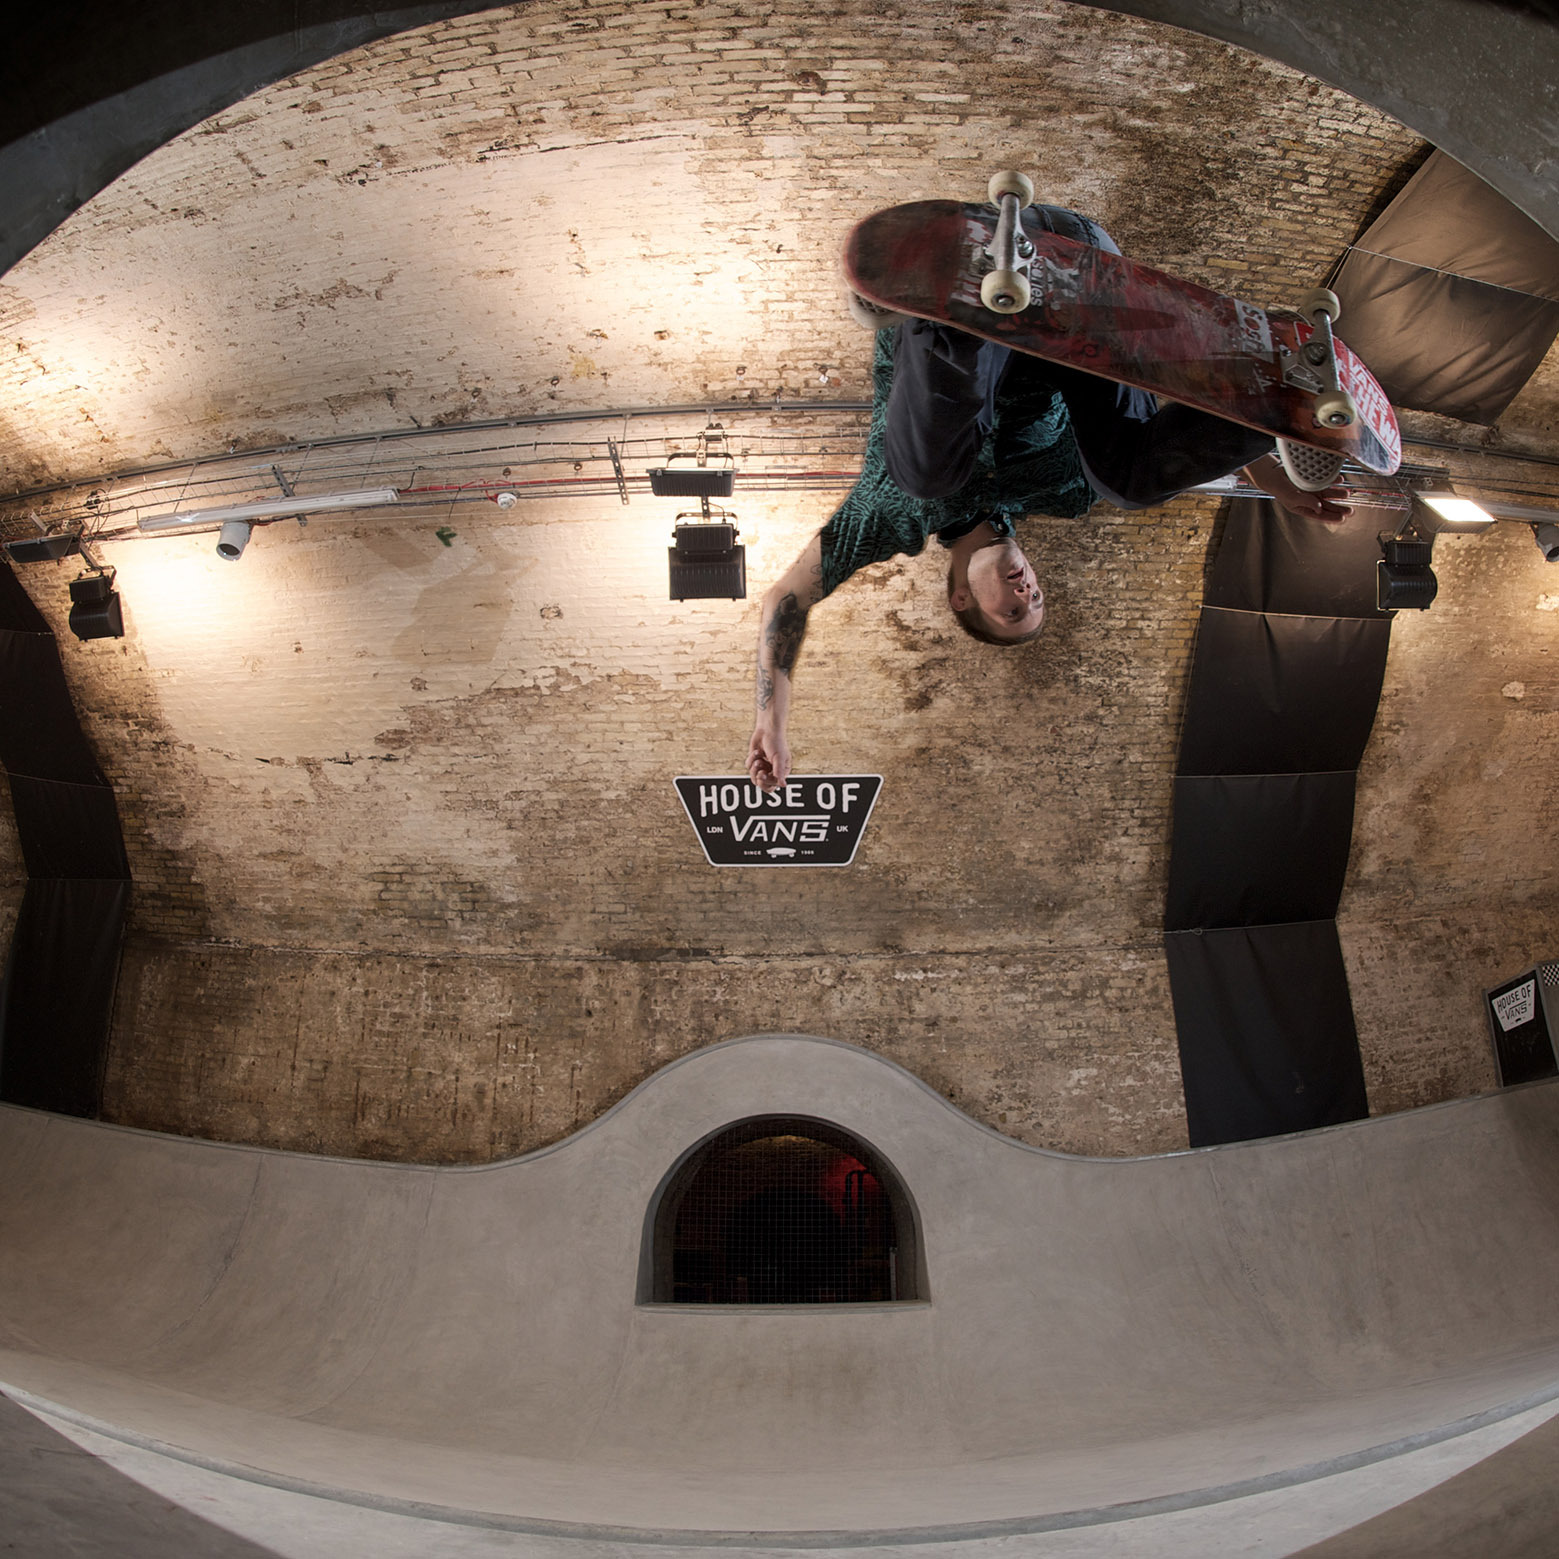 54b06744e58ecedabc000045_house-of-vans-london-tim-greatrex_house_of_vans_london_skatepark_-3-